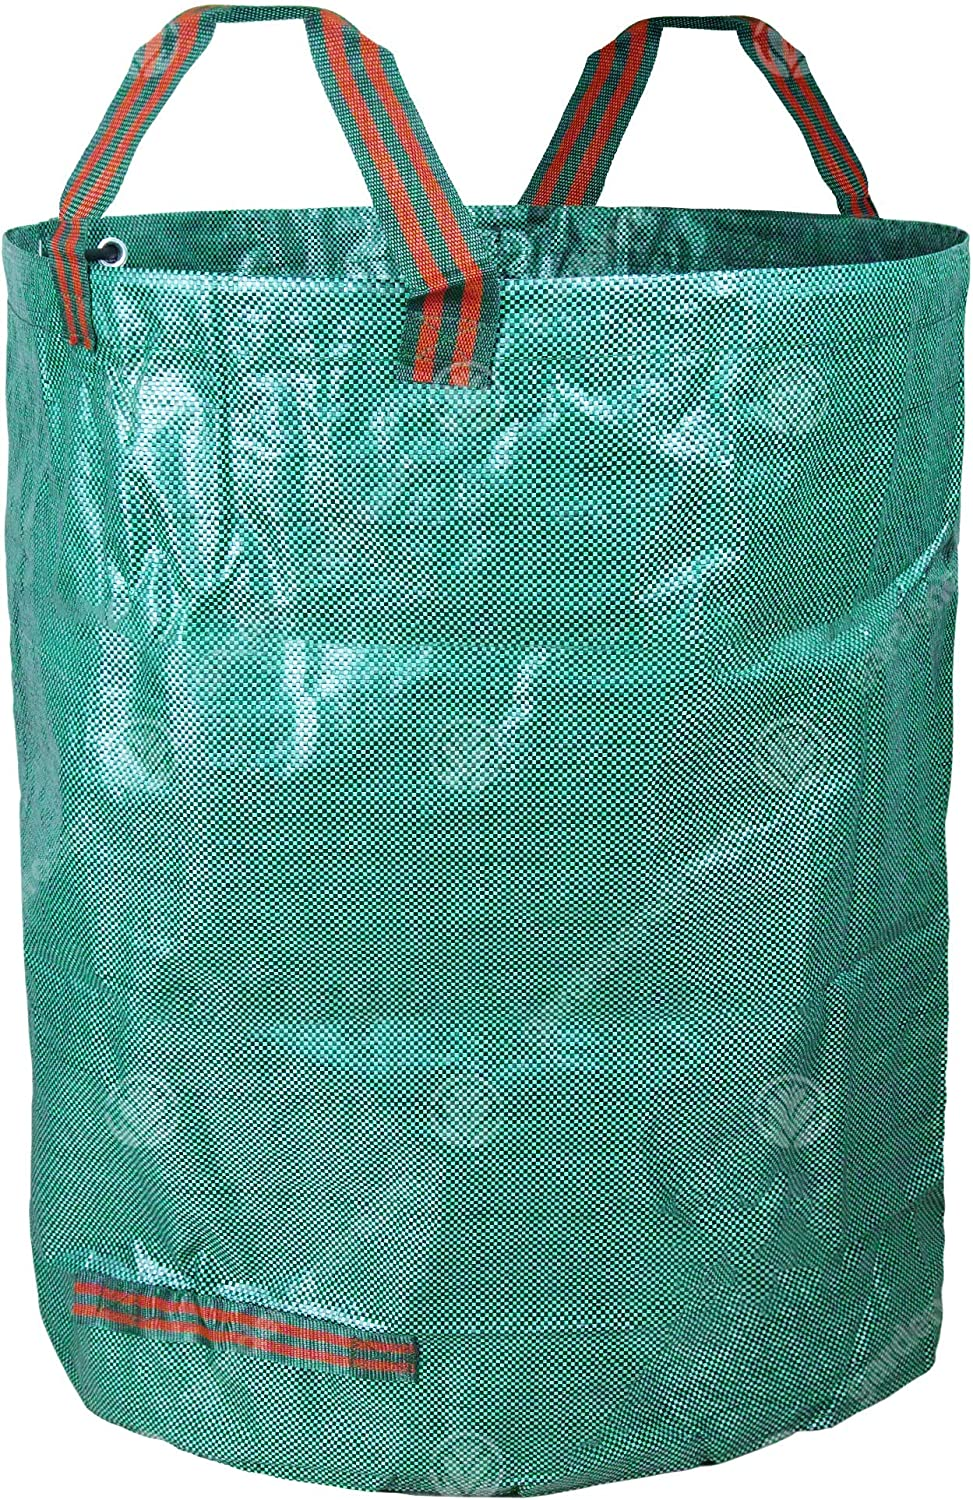 Large Heavy Duty Refuse Sacks With Handles GroundMaster 180L Garden Waste Bags